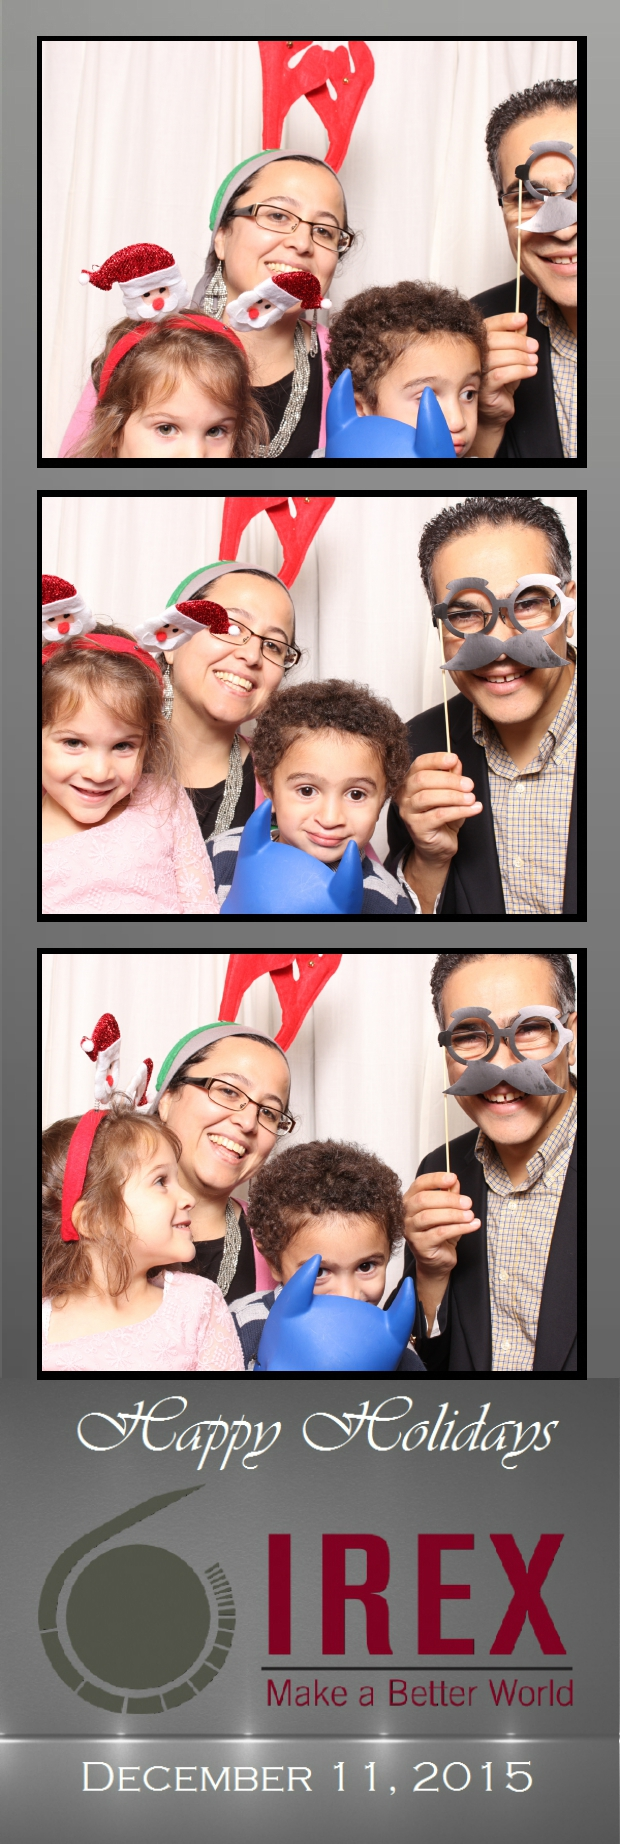 Guest House Events Photo Booth Strips IREX (30).jpg